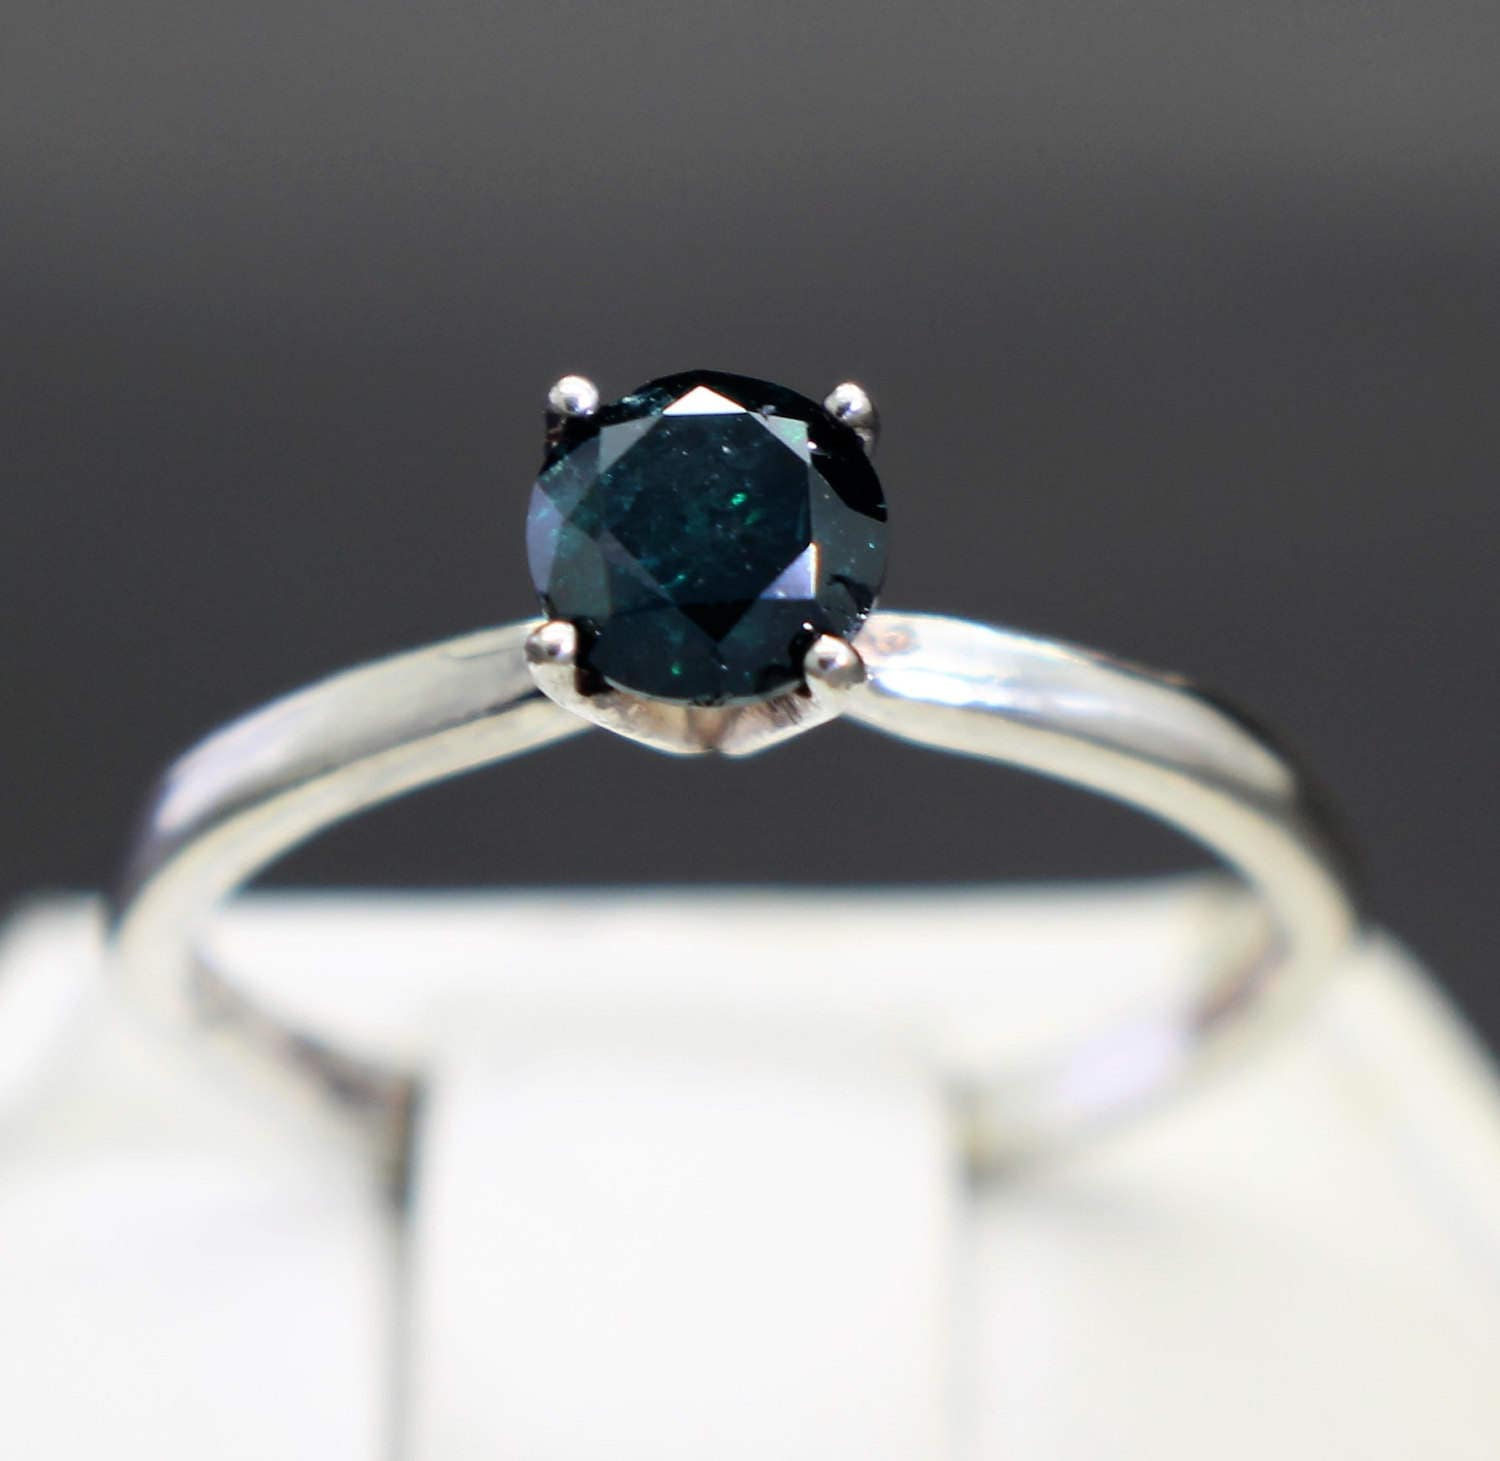 x wb rings silver diamond ring american native blue in dark shop white web artists turquoise buffalo sterling jewelry engagement